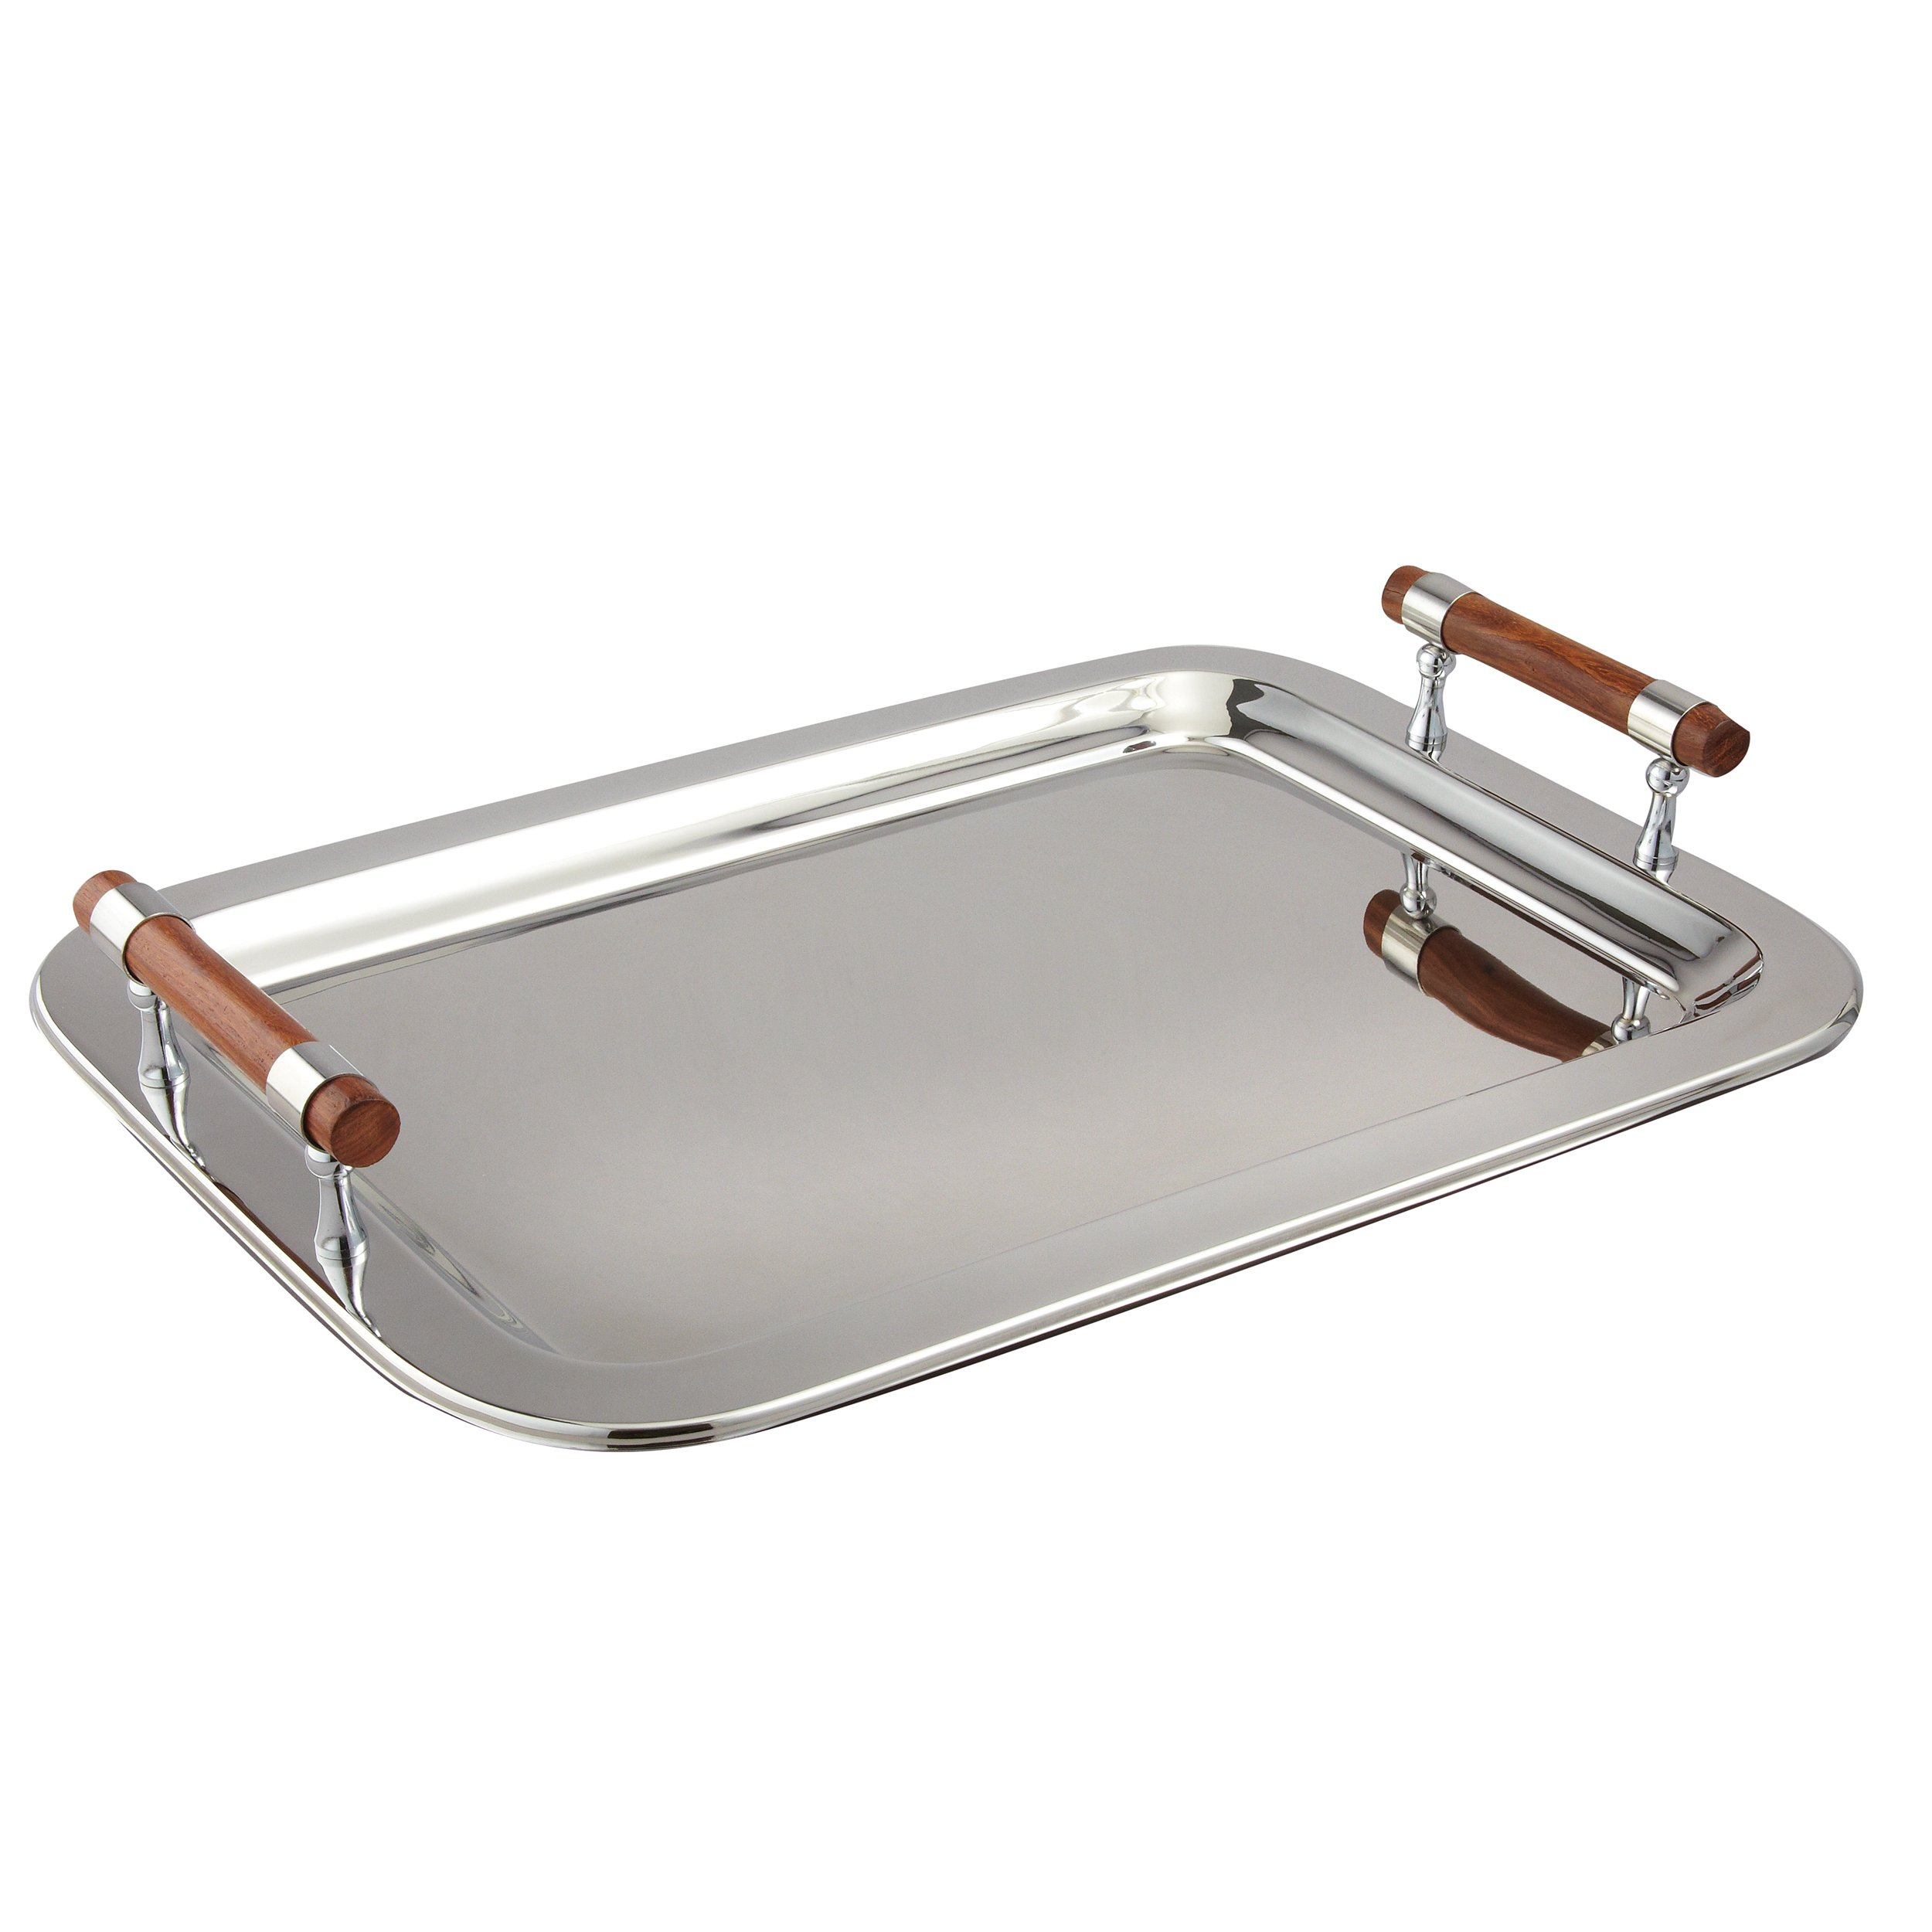 Elegance Stainless Steel Large Rectangular Tray with Wood Handles, 22 by 15.5-Inch, Silver